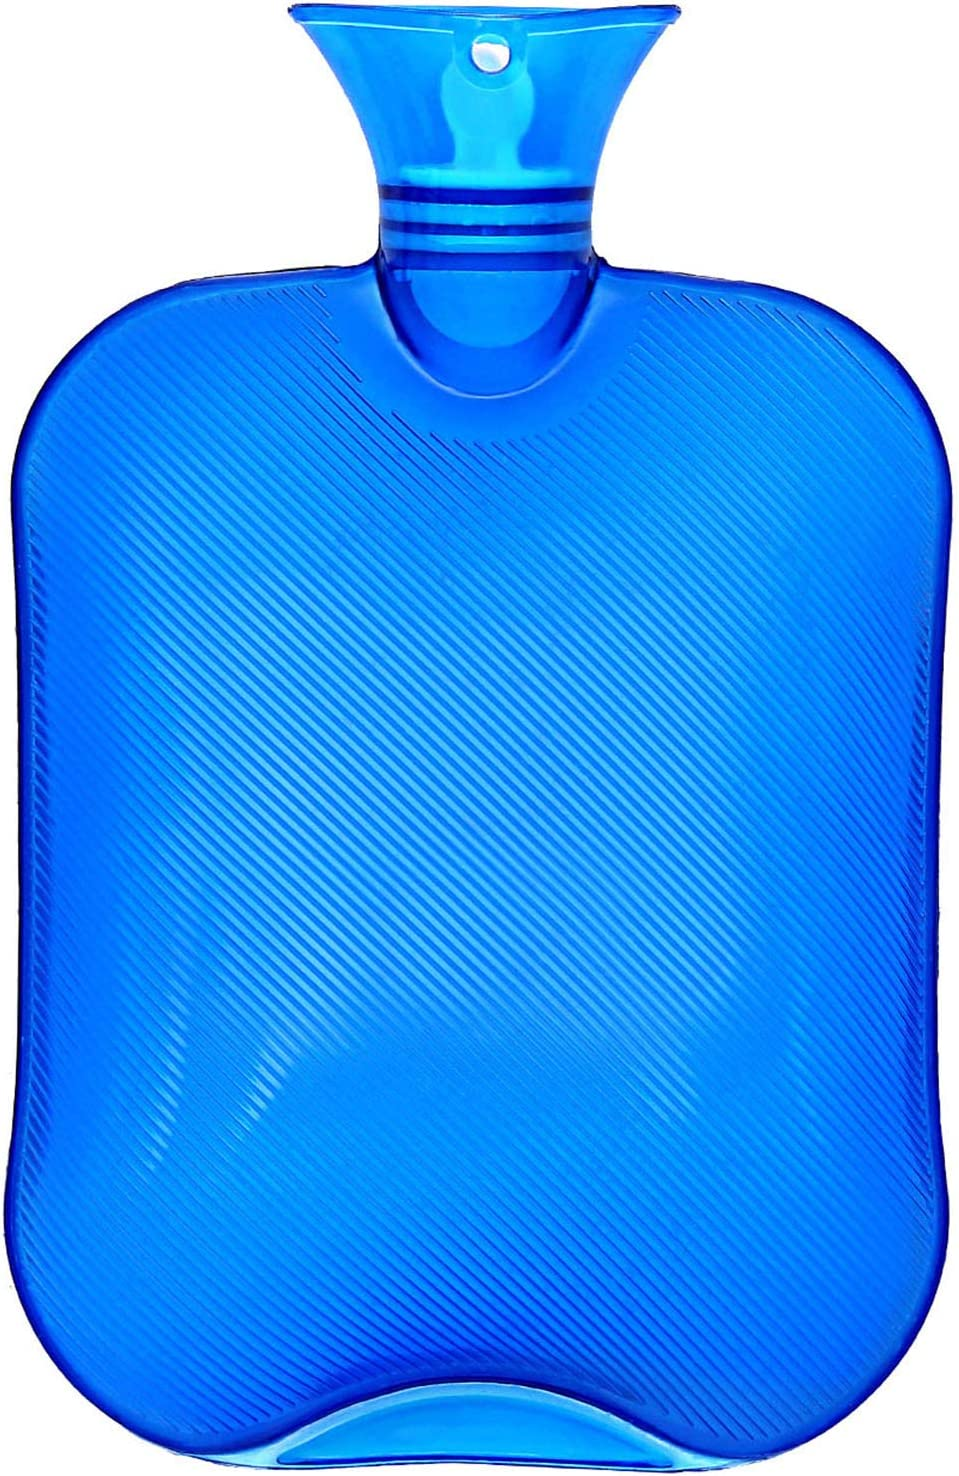 Hot Water Bottle, Ohuhu 2L Classic Premium Transparent Hot or Cold Water Bag for Pain Relief Hot Pack Therapy 2000ml 68oz, Blue, Home and Outdoor